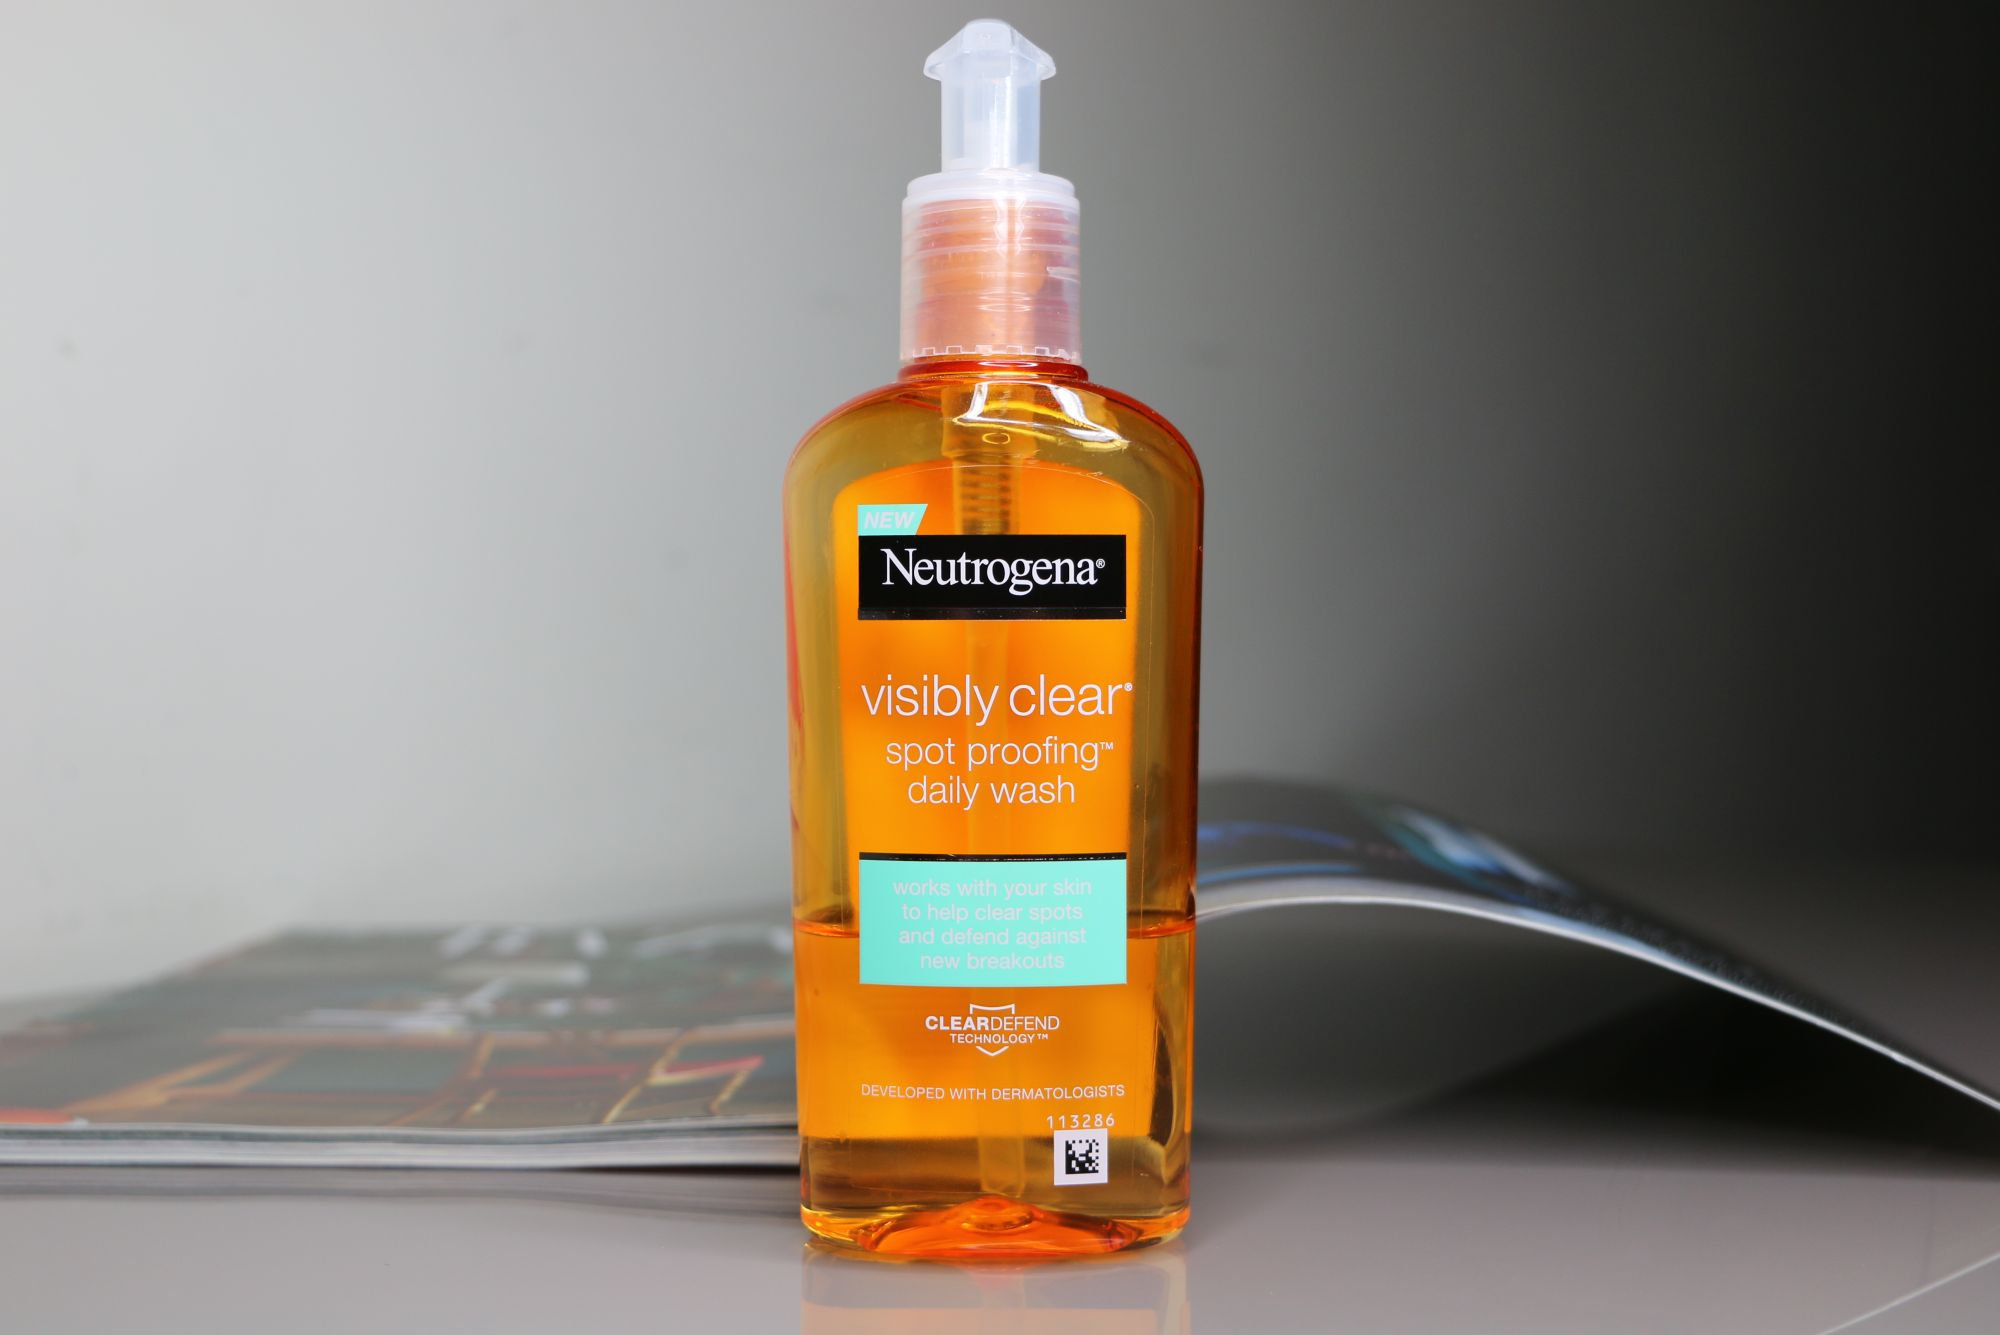 TOP 5 SKINCARE PRODUCTS - Neutrogena Visibly Clear Daily Wash